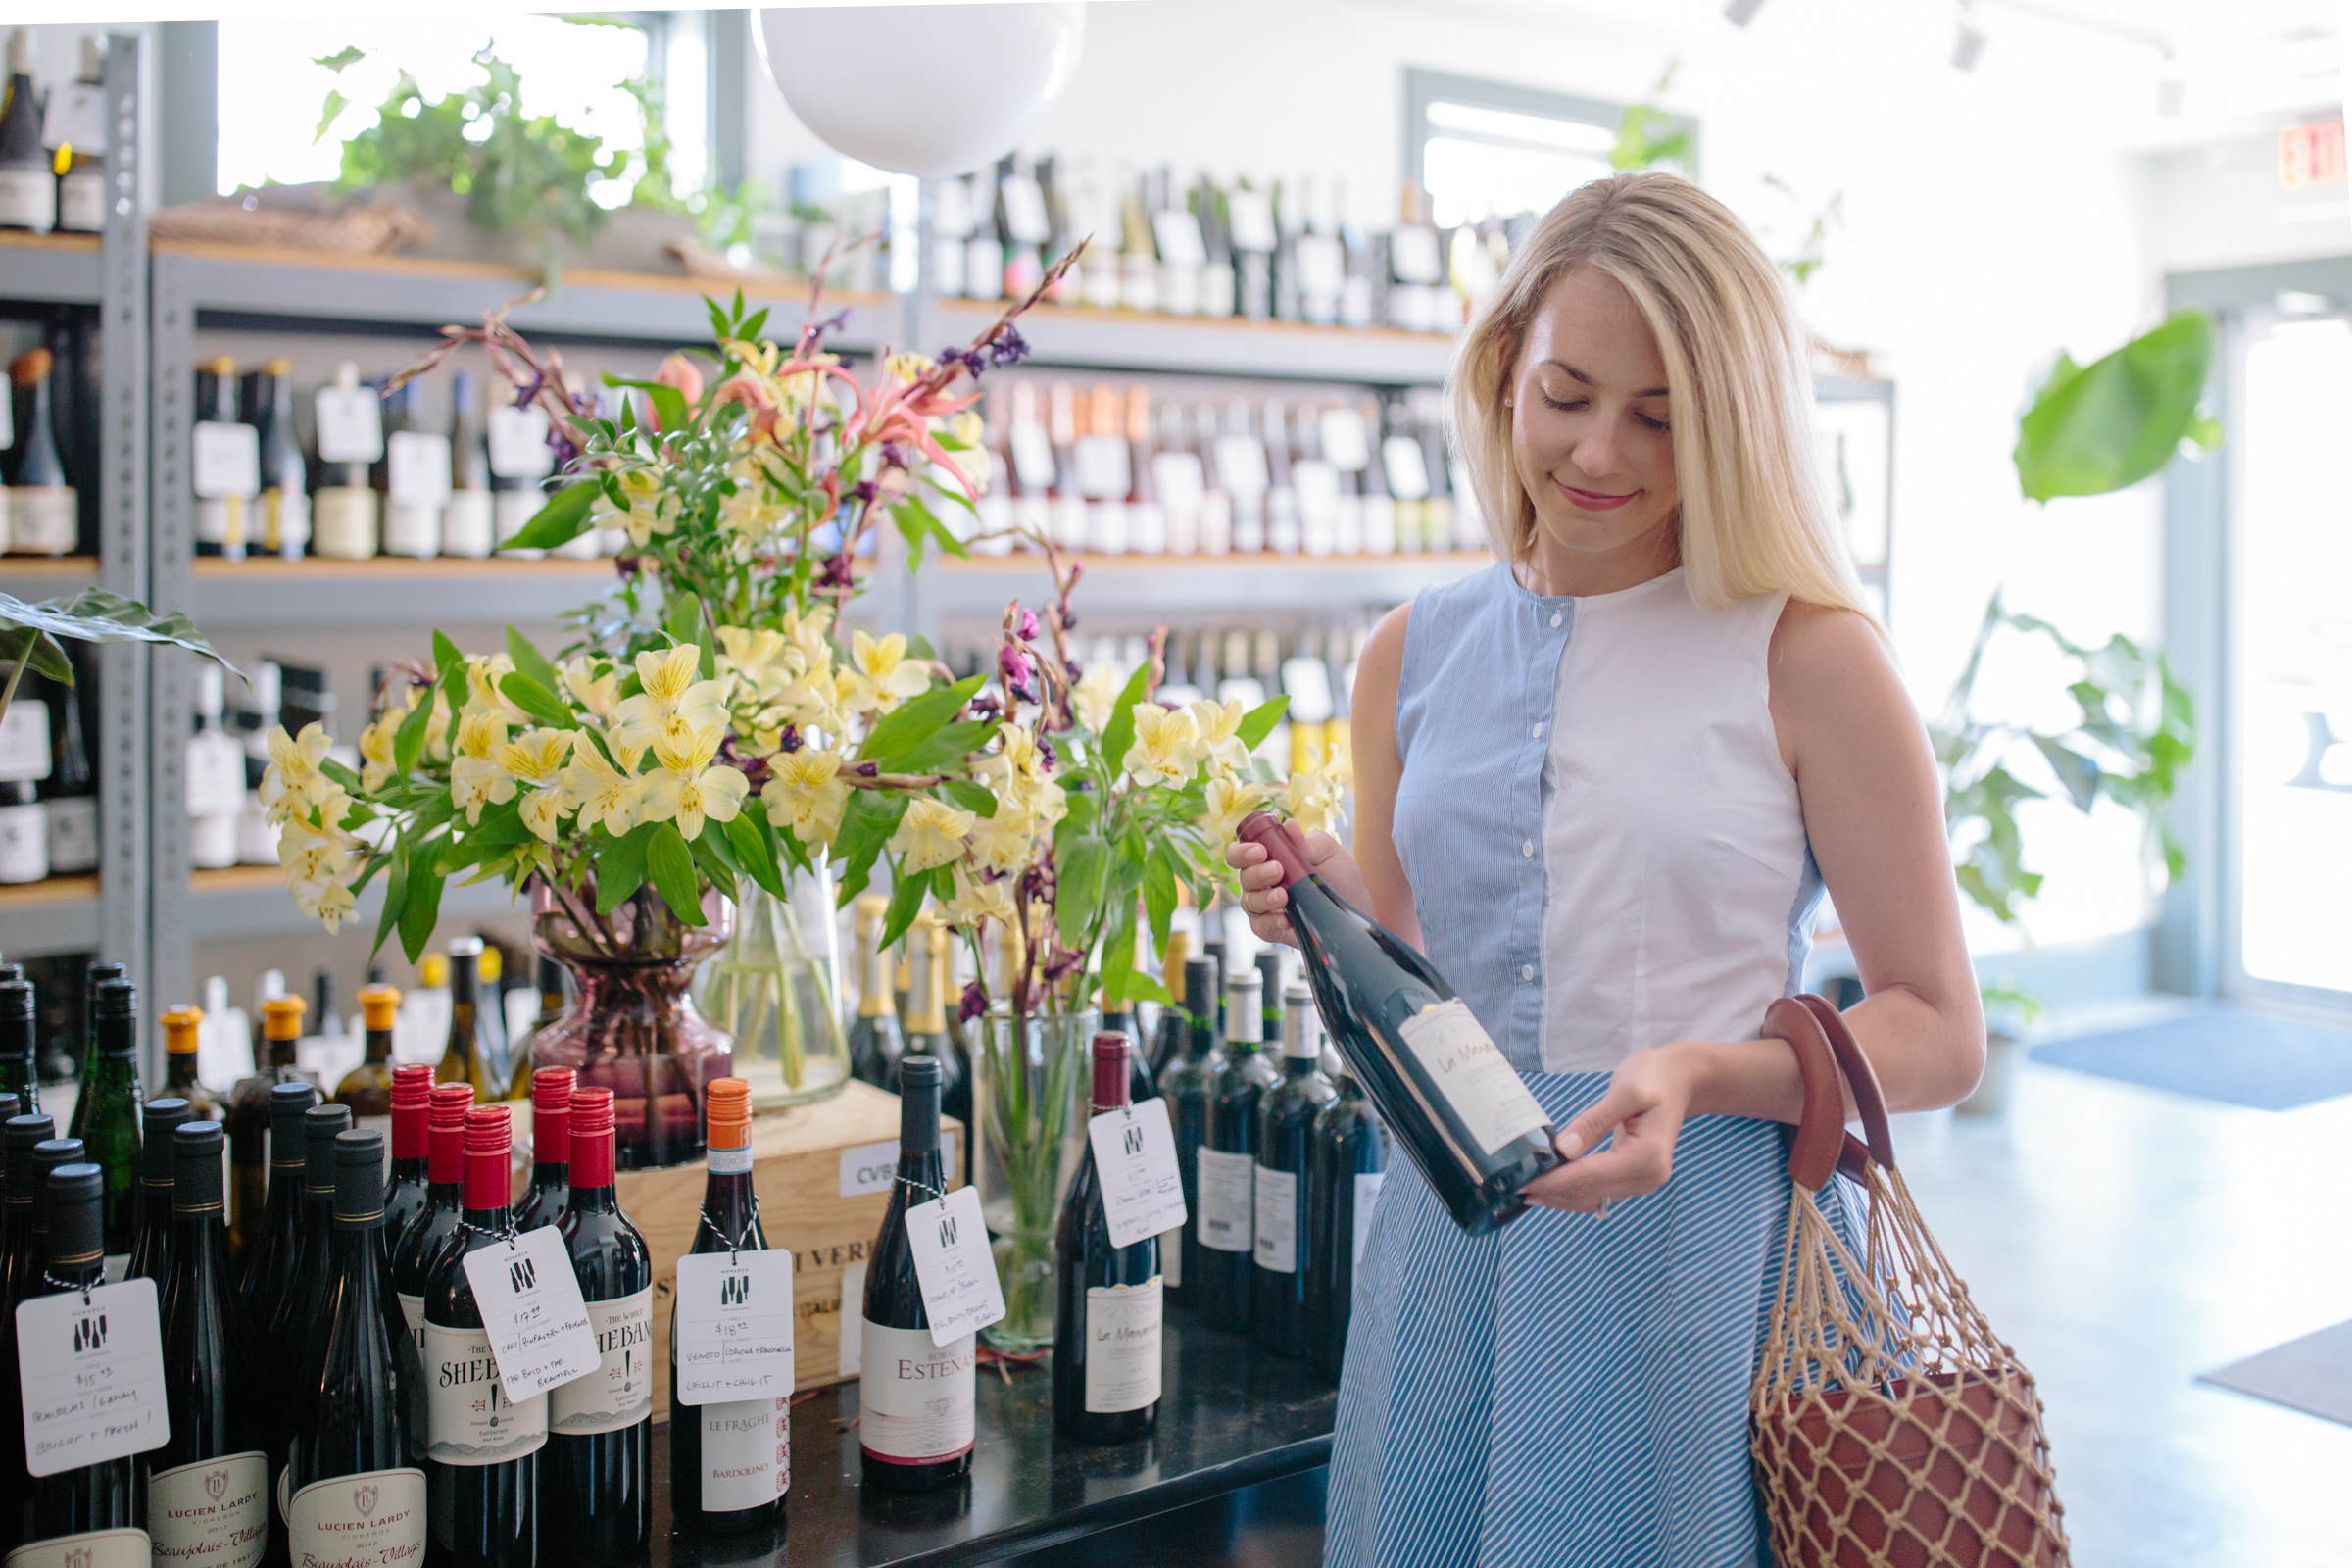 Tips for where to buy and drink wine in Charleston // A guide to the best wine shops in Charleston // Rhyme & Reason